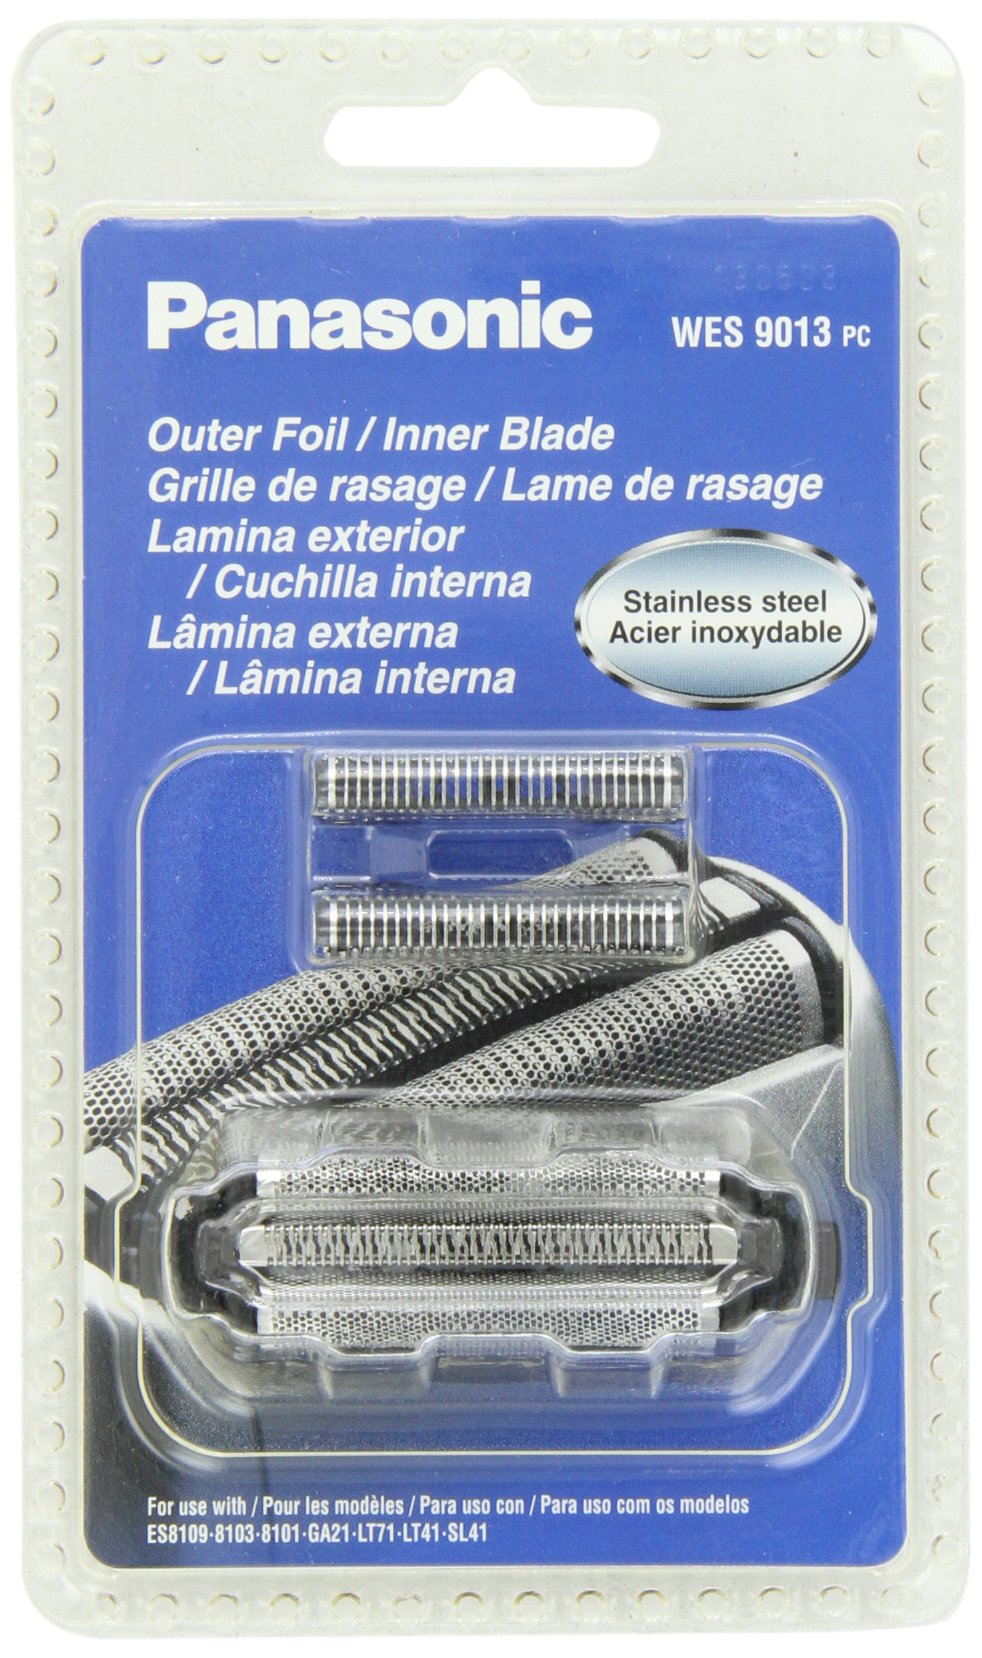 Panasonic WES9013PC Electric Razor Replacement Inner Blade and Outer Foil Set for Men